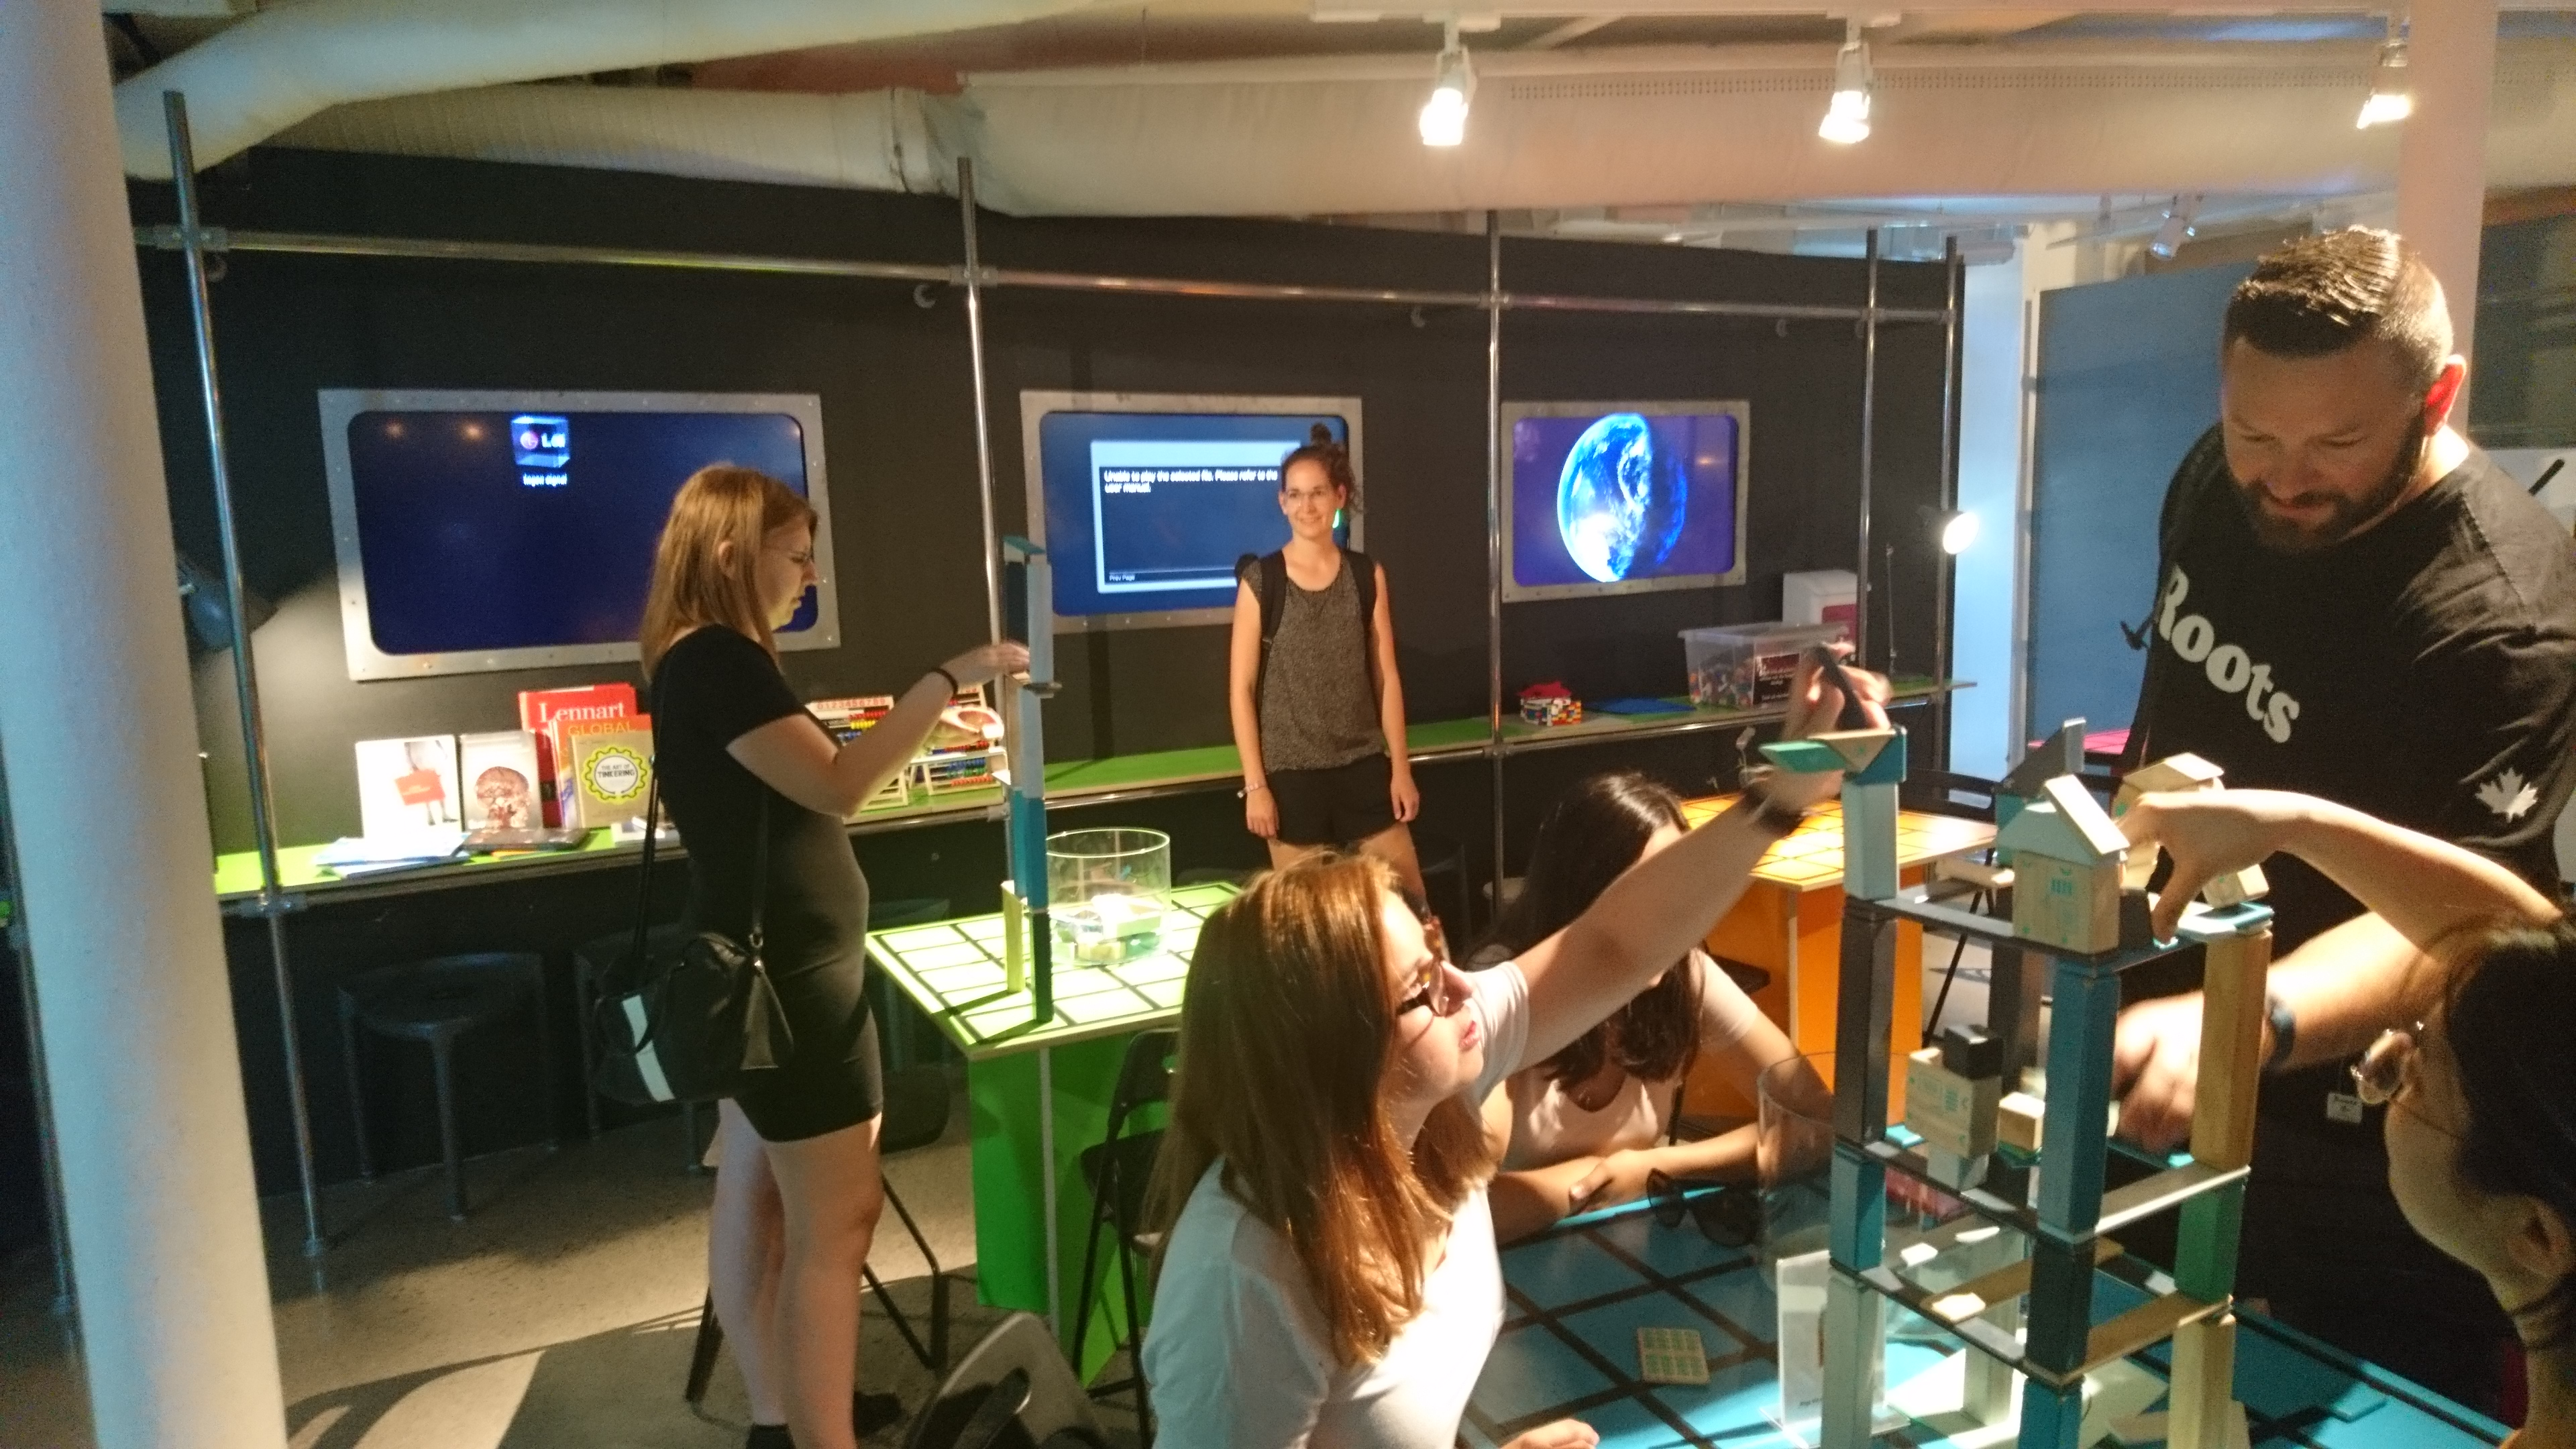 The students get their hands on the interactive exhibitions at Visualization Center C.